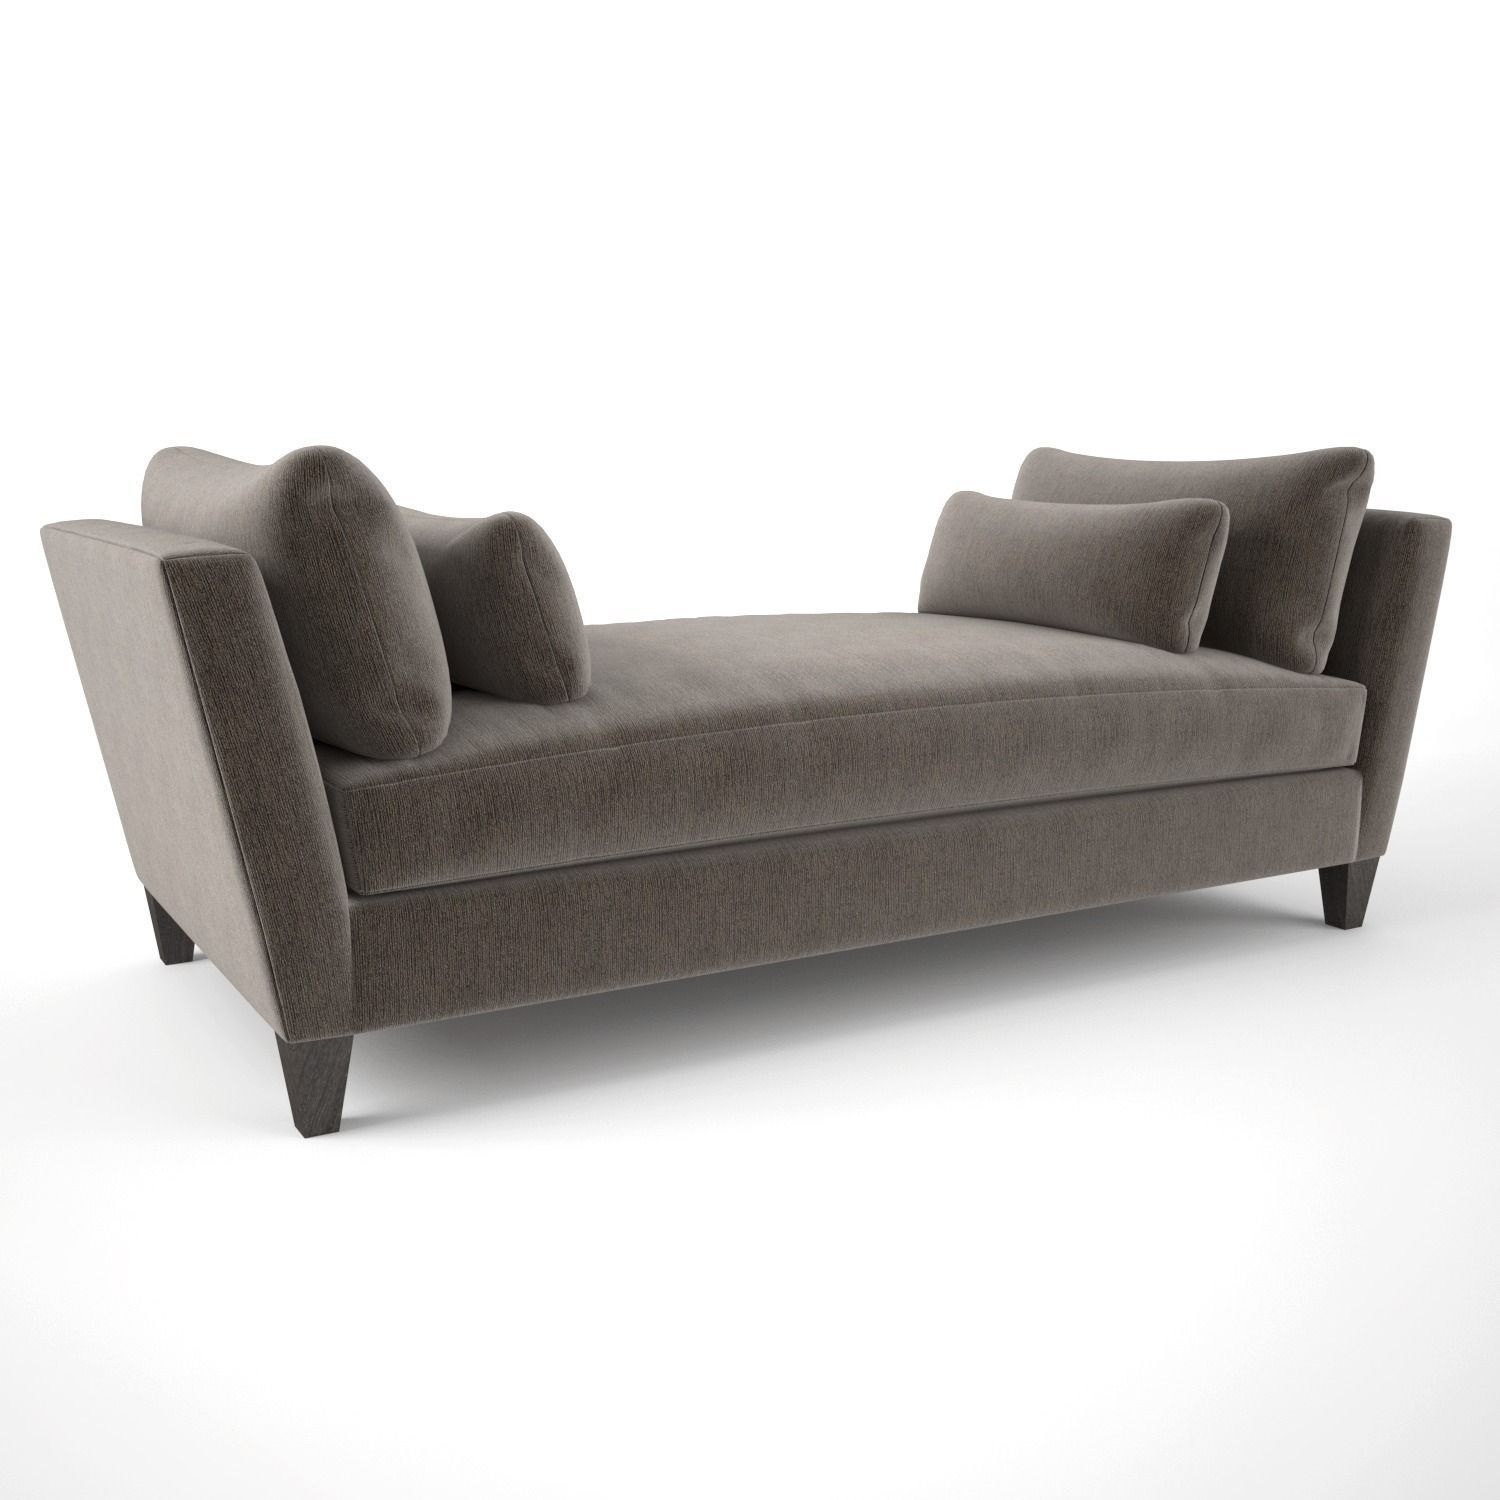 Crate and Barrel Marlowe Daybed Sofa 3D model